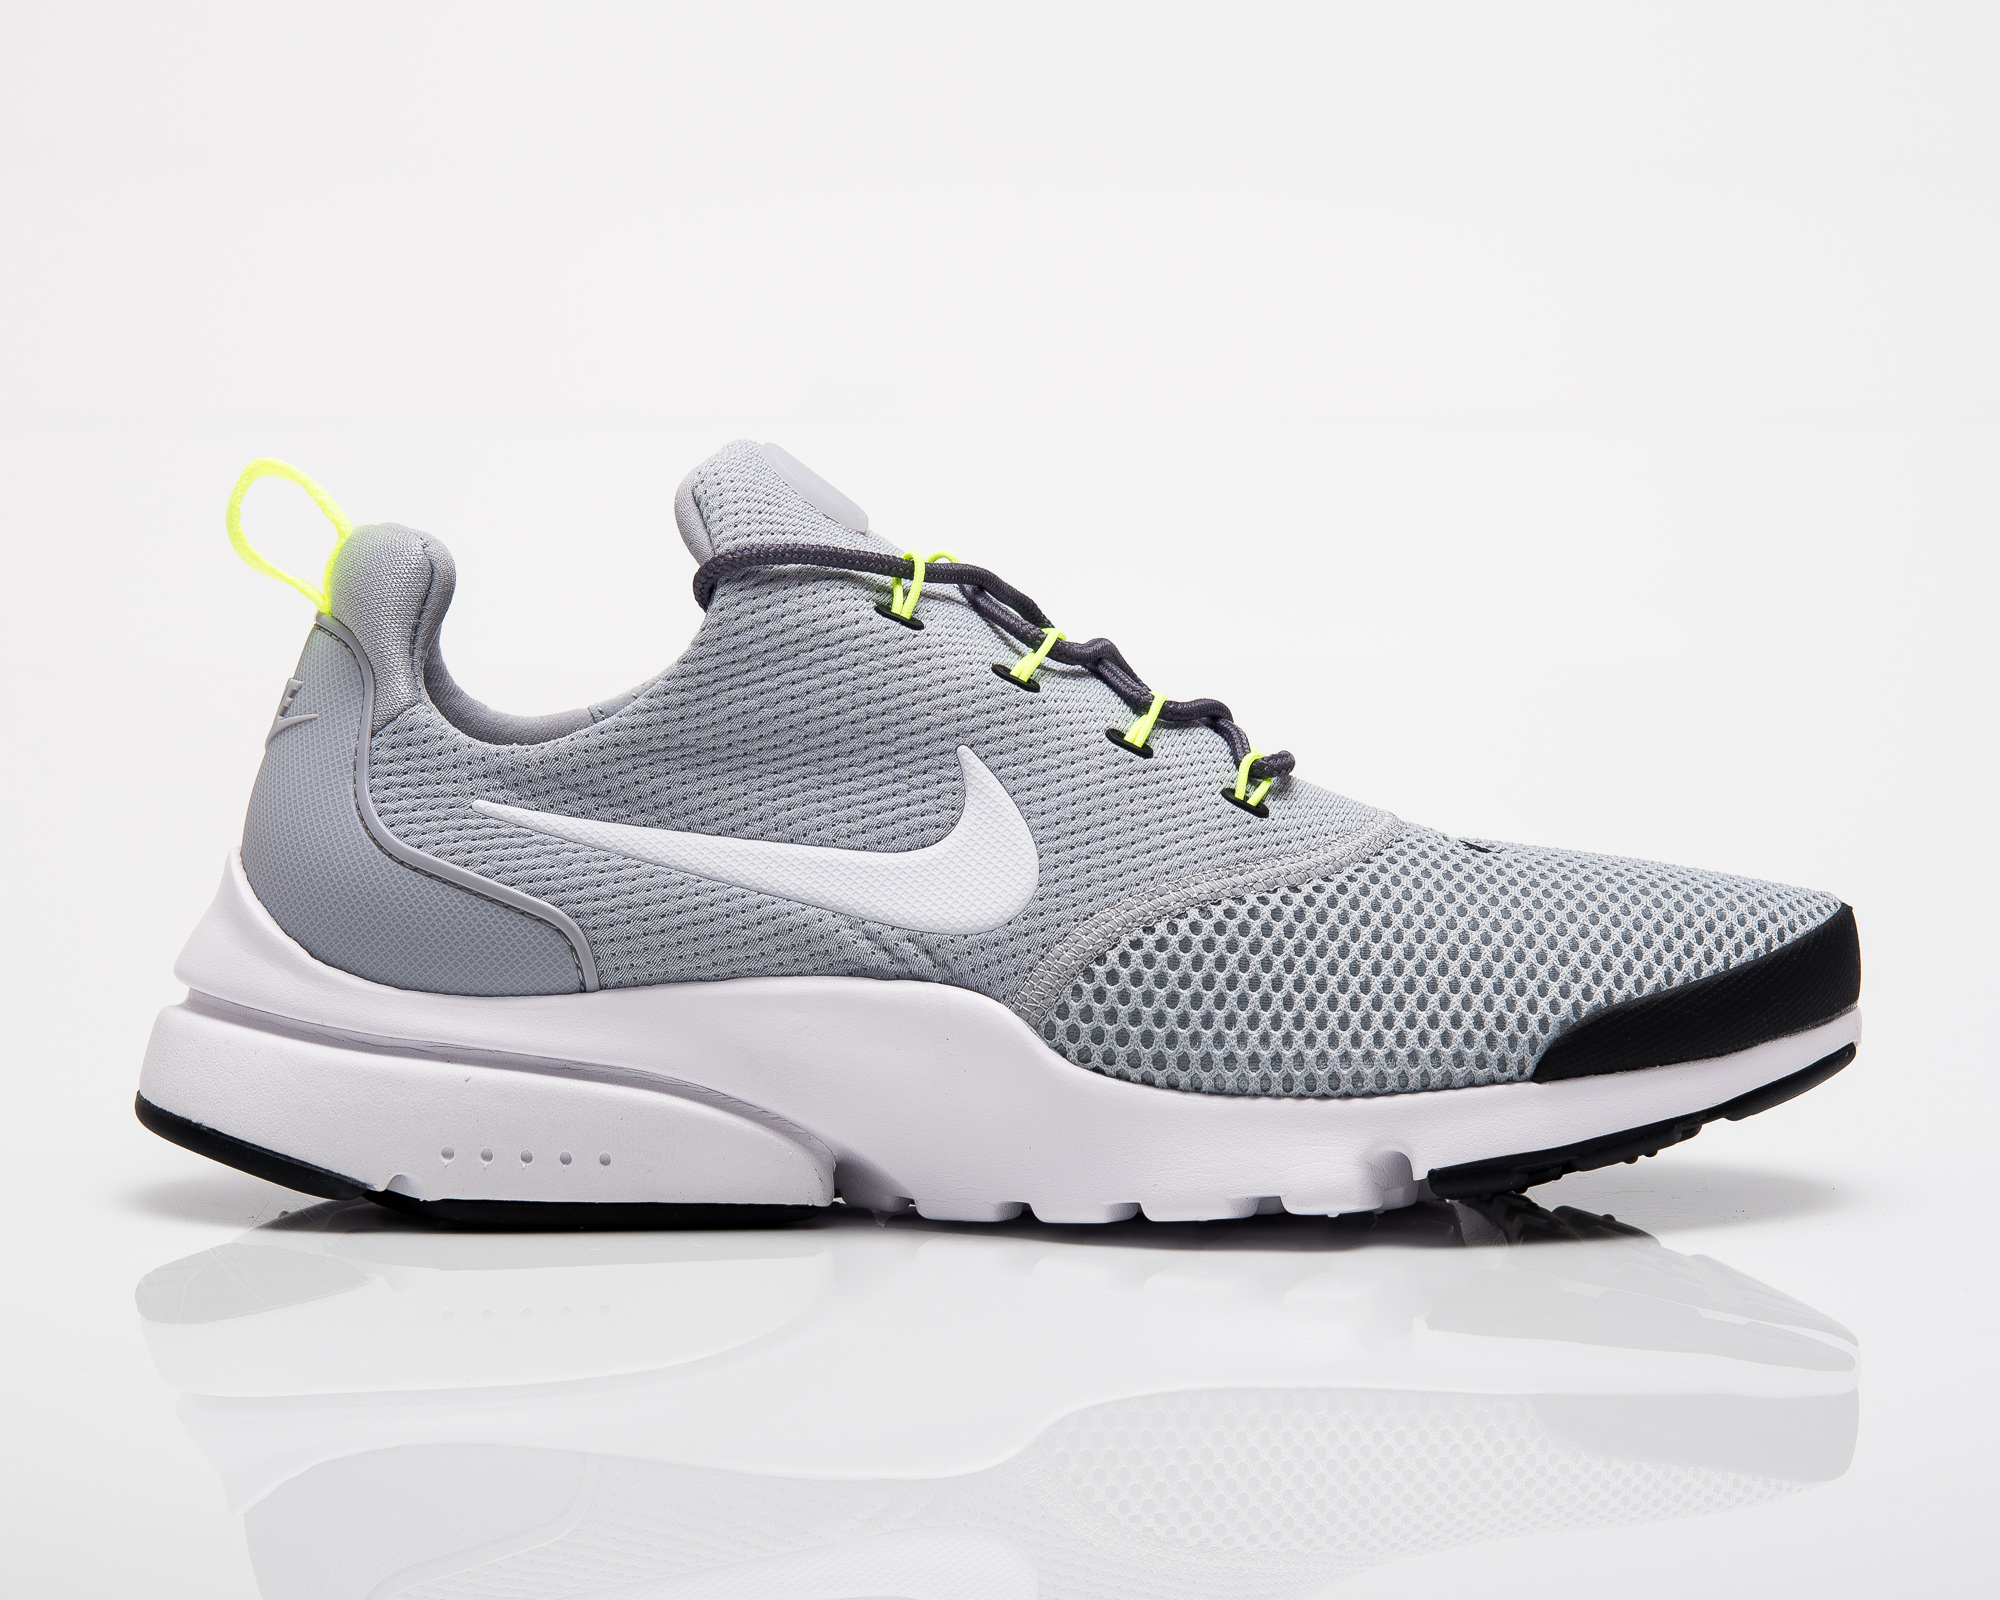 online store a0043 bf140 Nike Presto Fly - Shoes Casual - Sporting goods   sil.lt